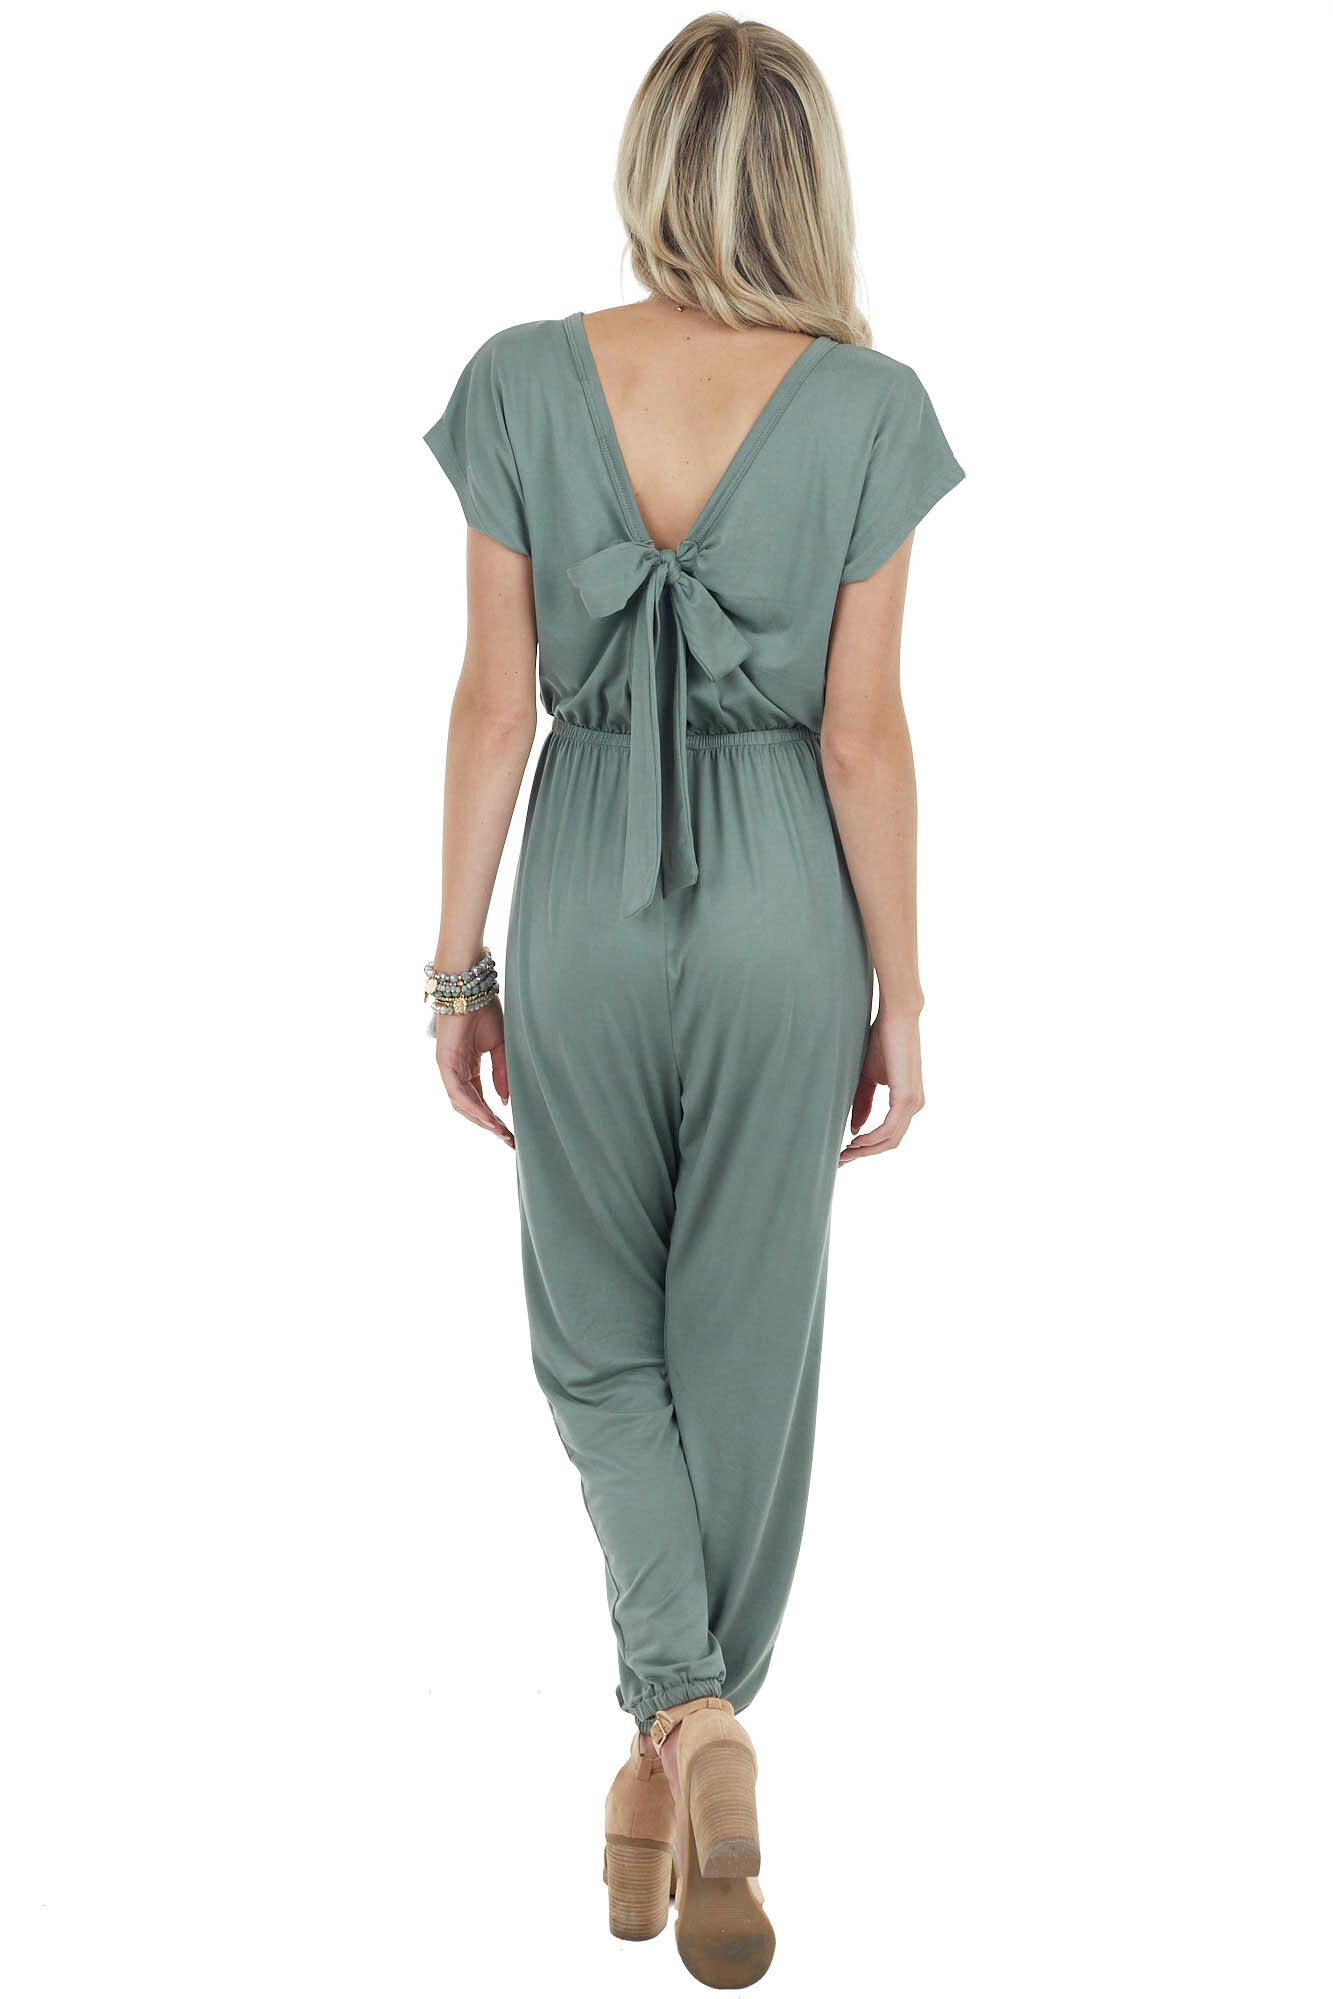 Dusty Sage Knit Jumpsuit with Open Back and Tie Detail